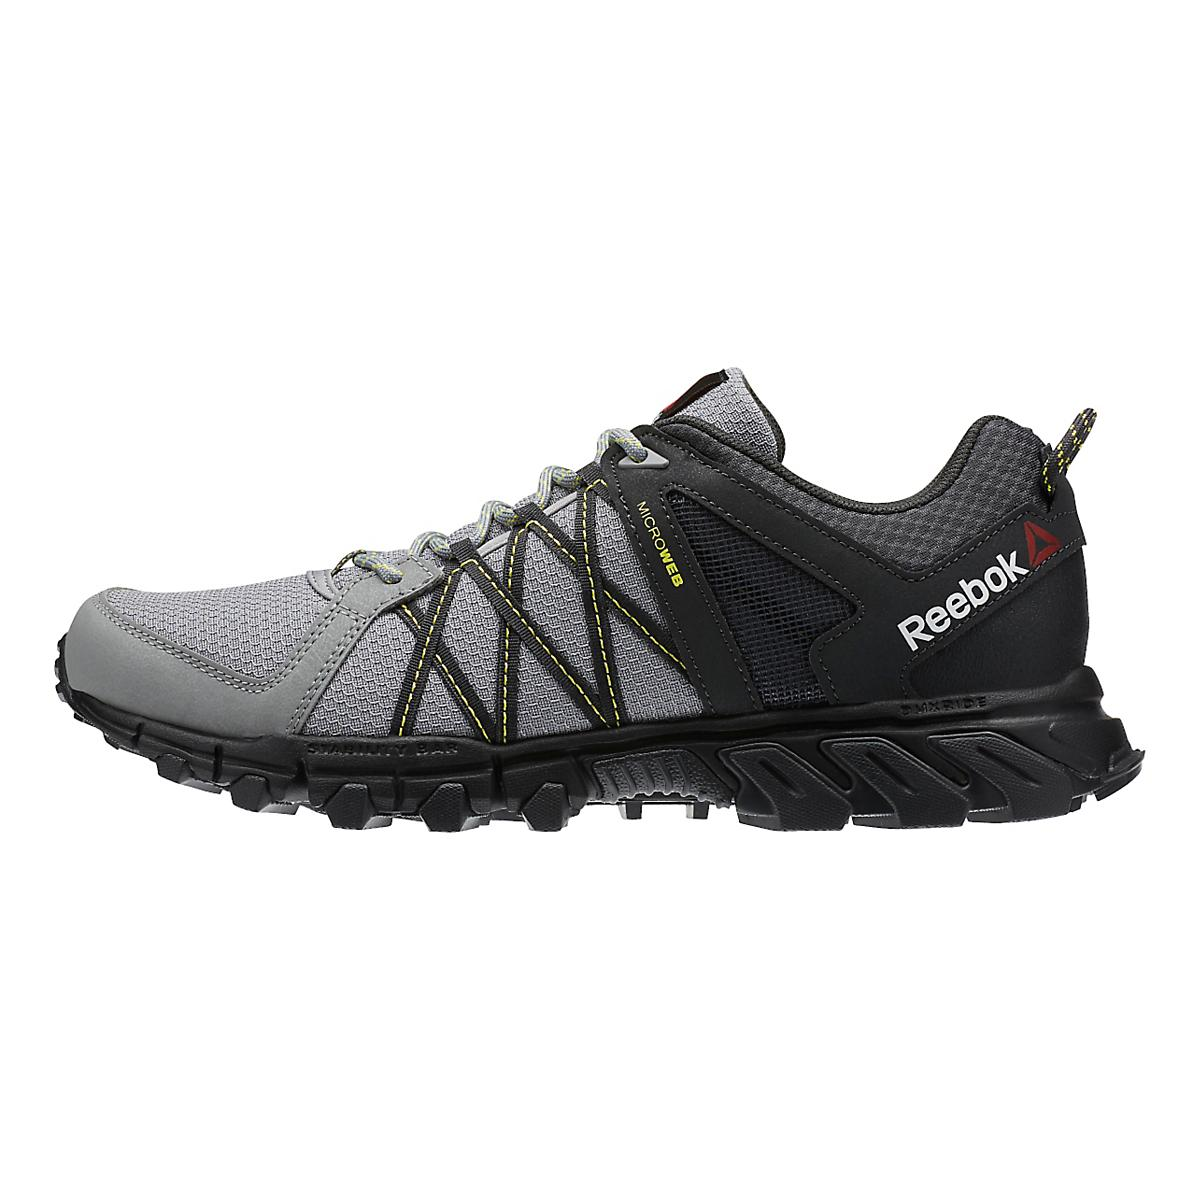 Meloso norte Gángster  Mens Reebok TrailGrip RS 5.0 Trail Running Shoe at Road Runner Sports